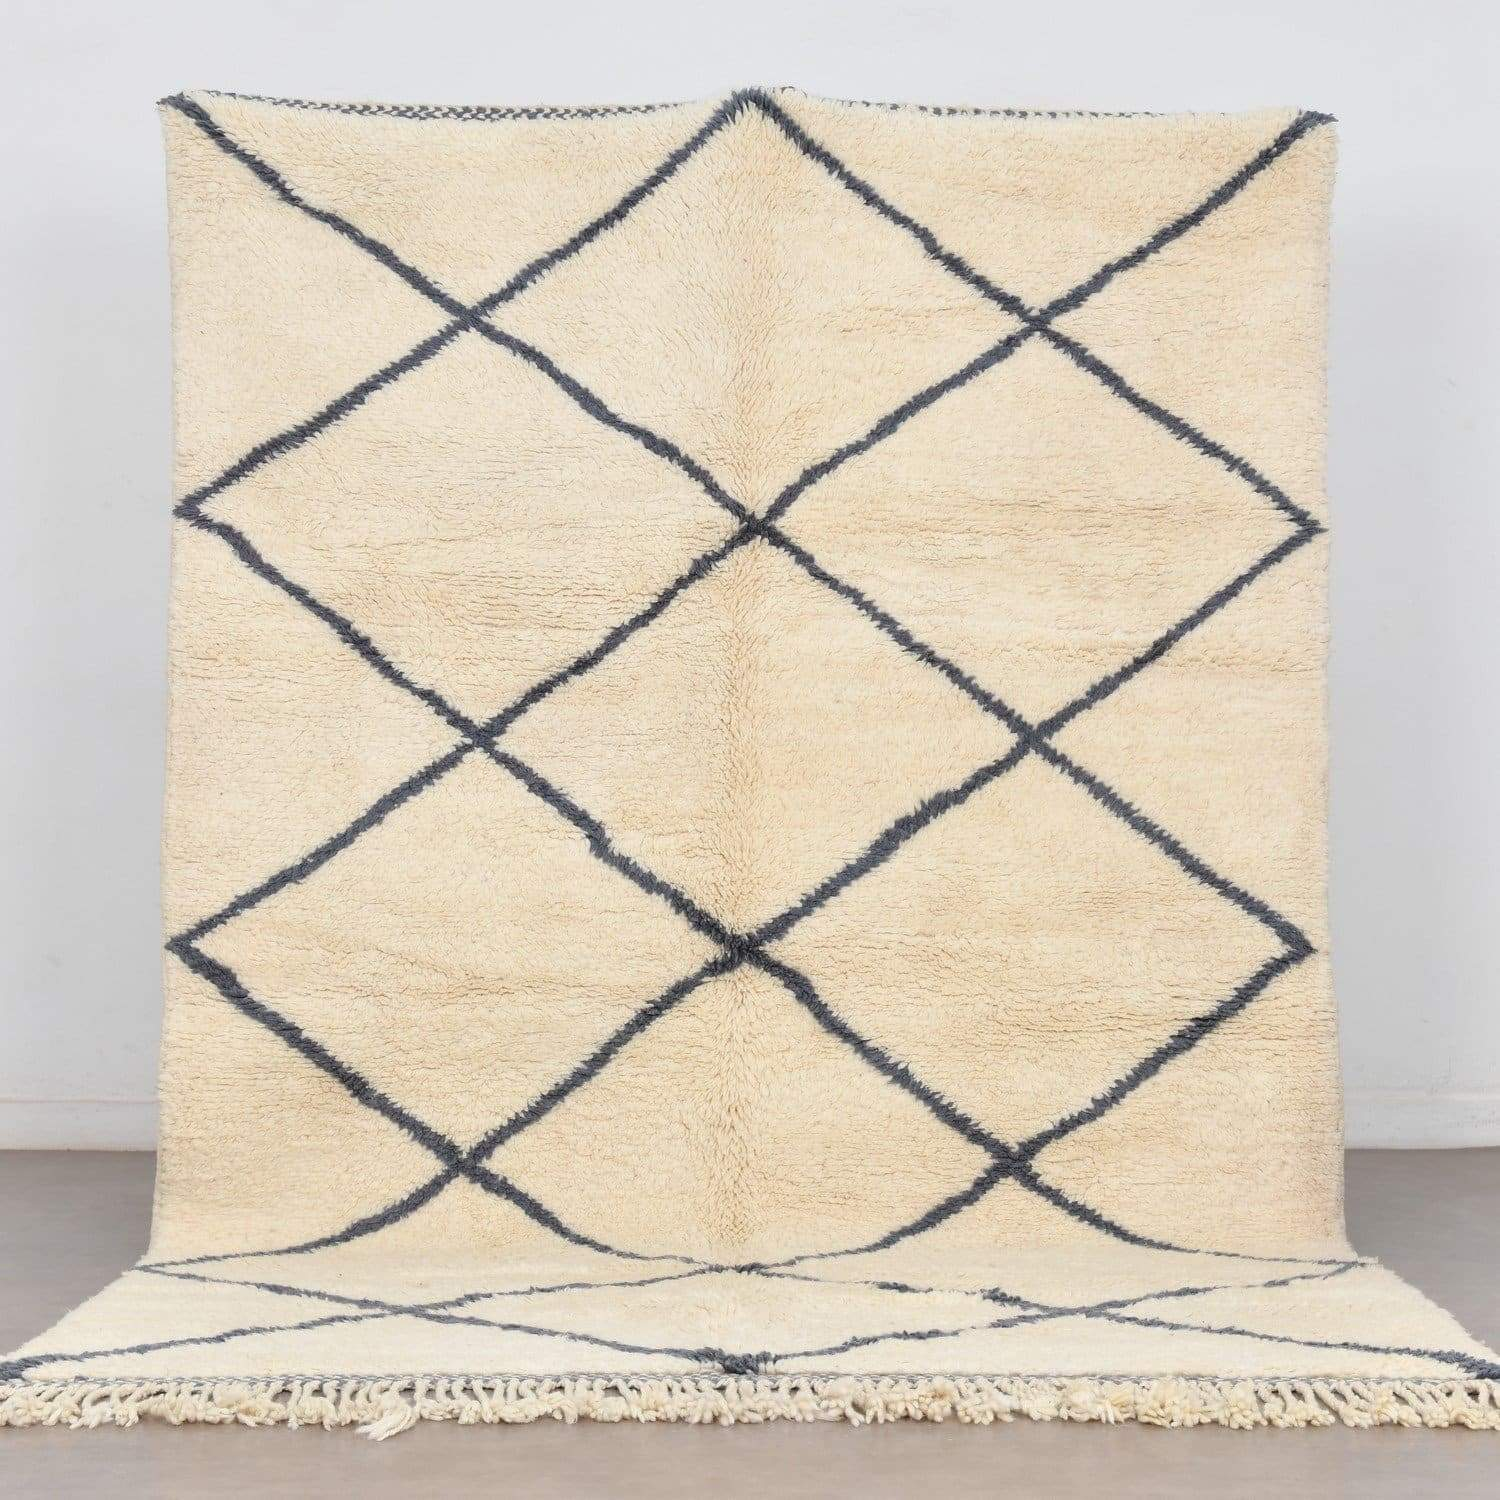 Luxury Mrirt rug 6 x 9.2 ft / 184 x 280 cm - Mrirt Rug